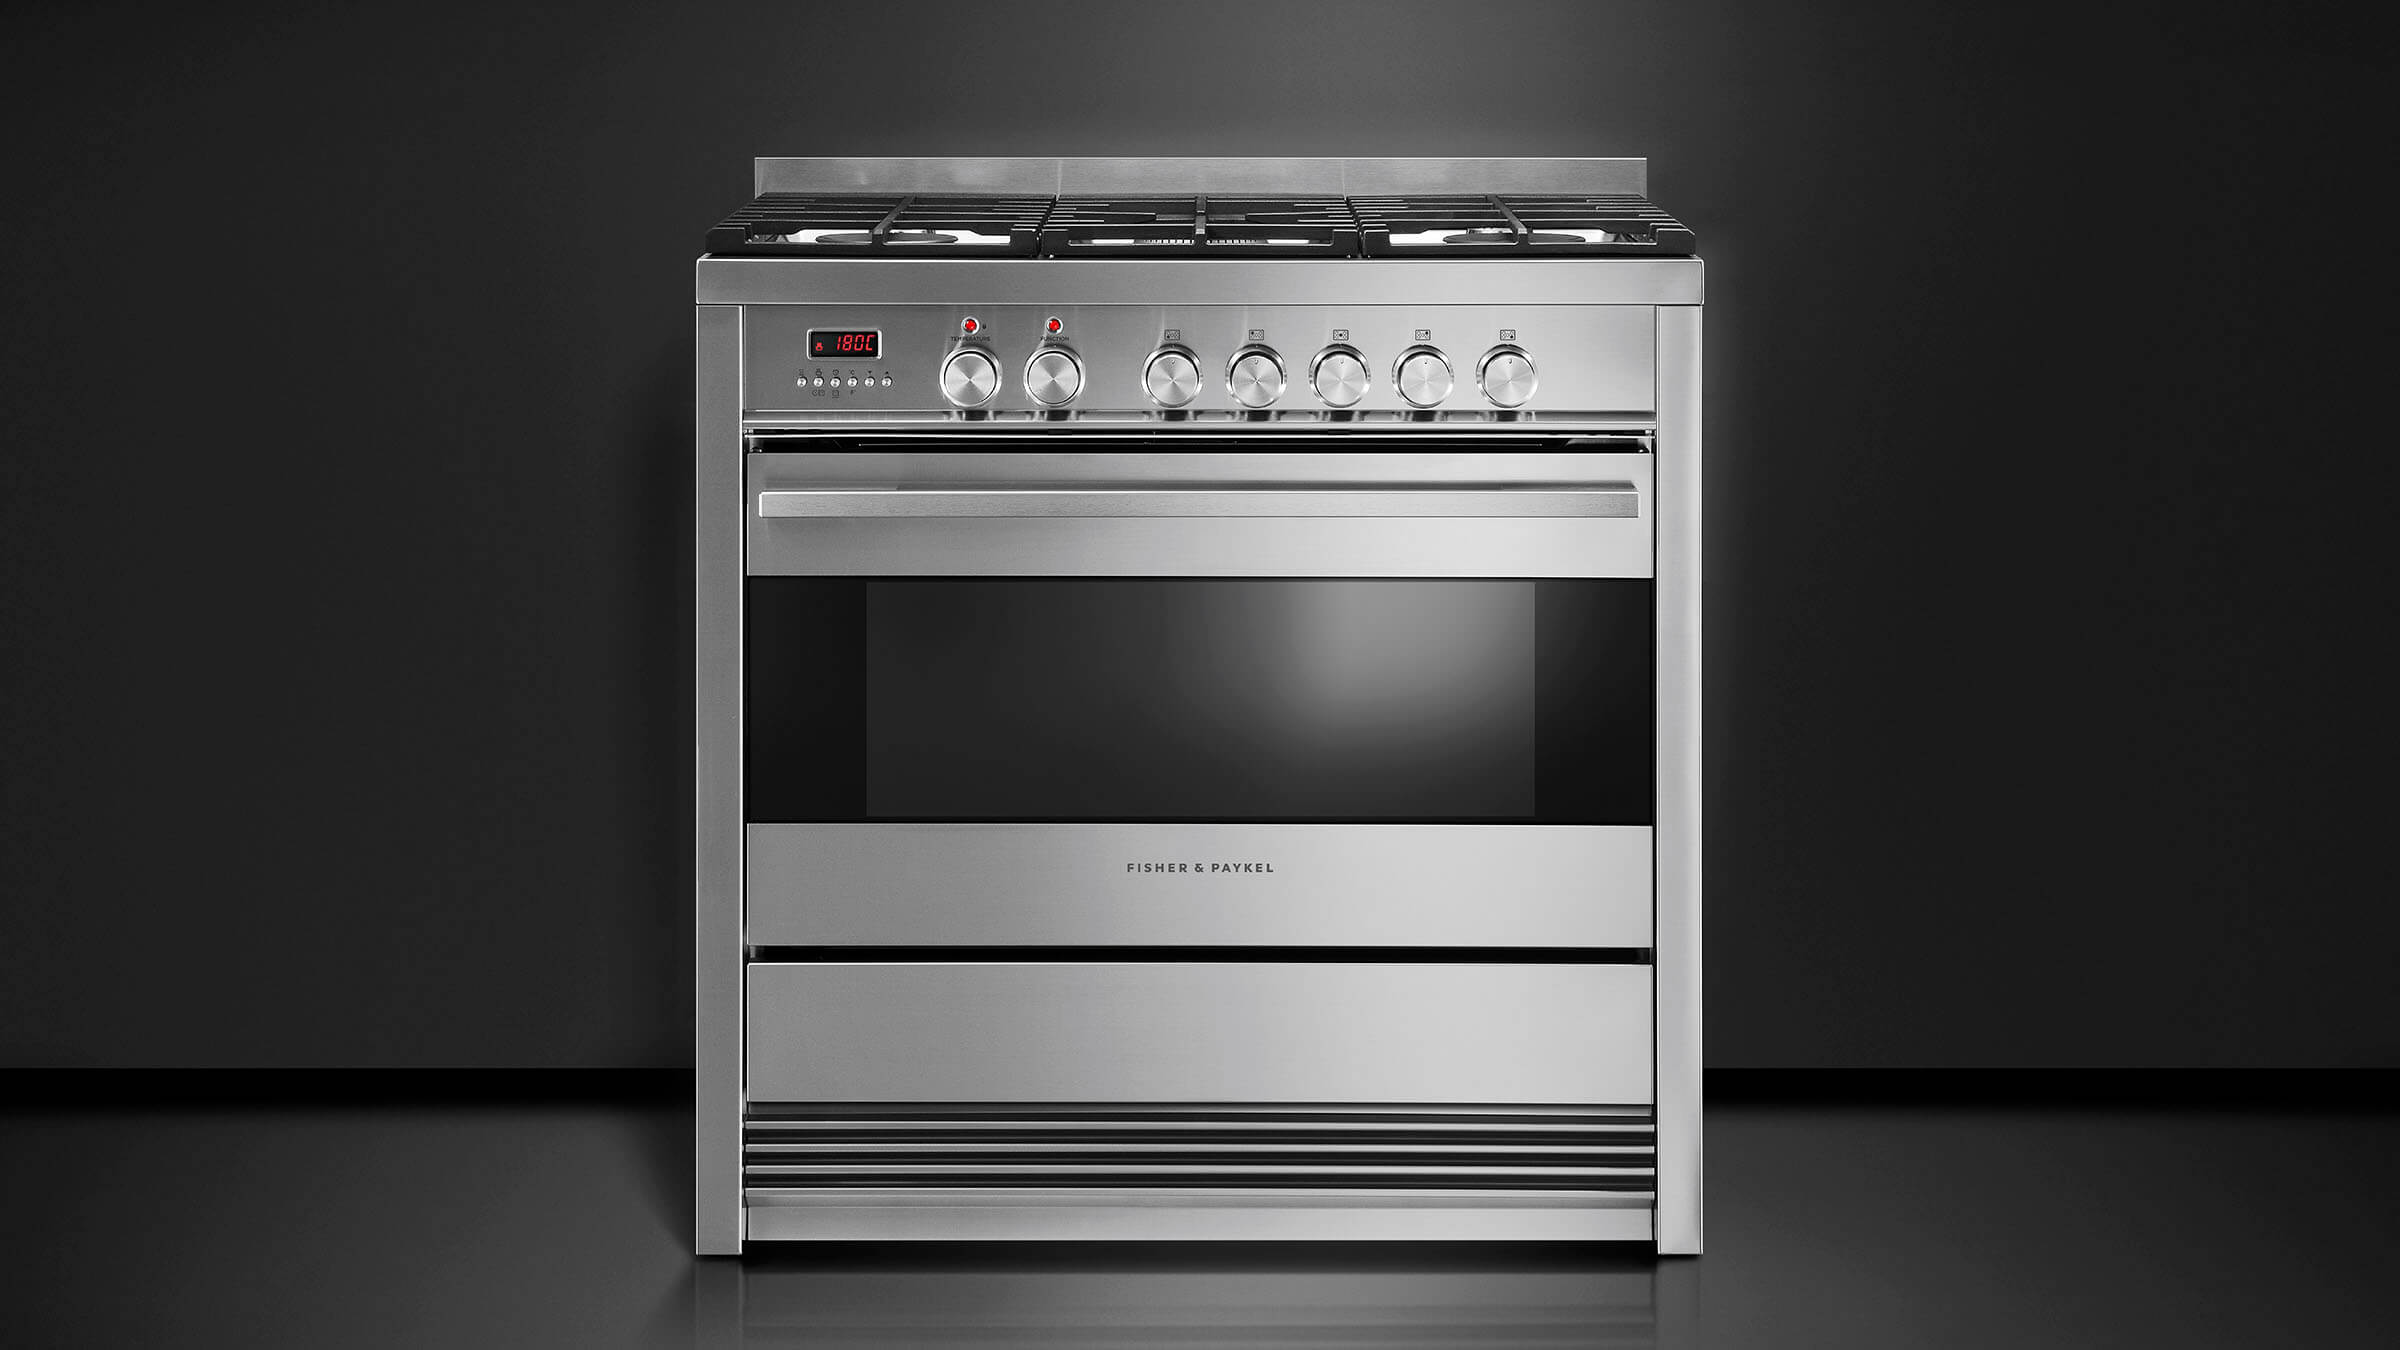 Freestanding stoves, ranges & ovens - Fisher & Paykel NZ